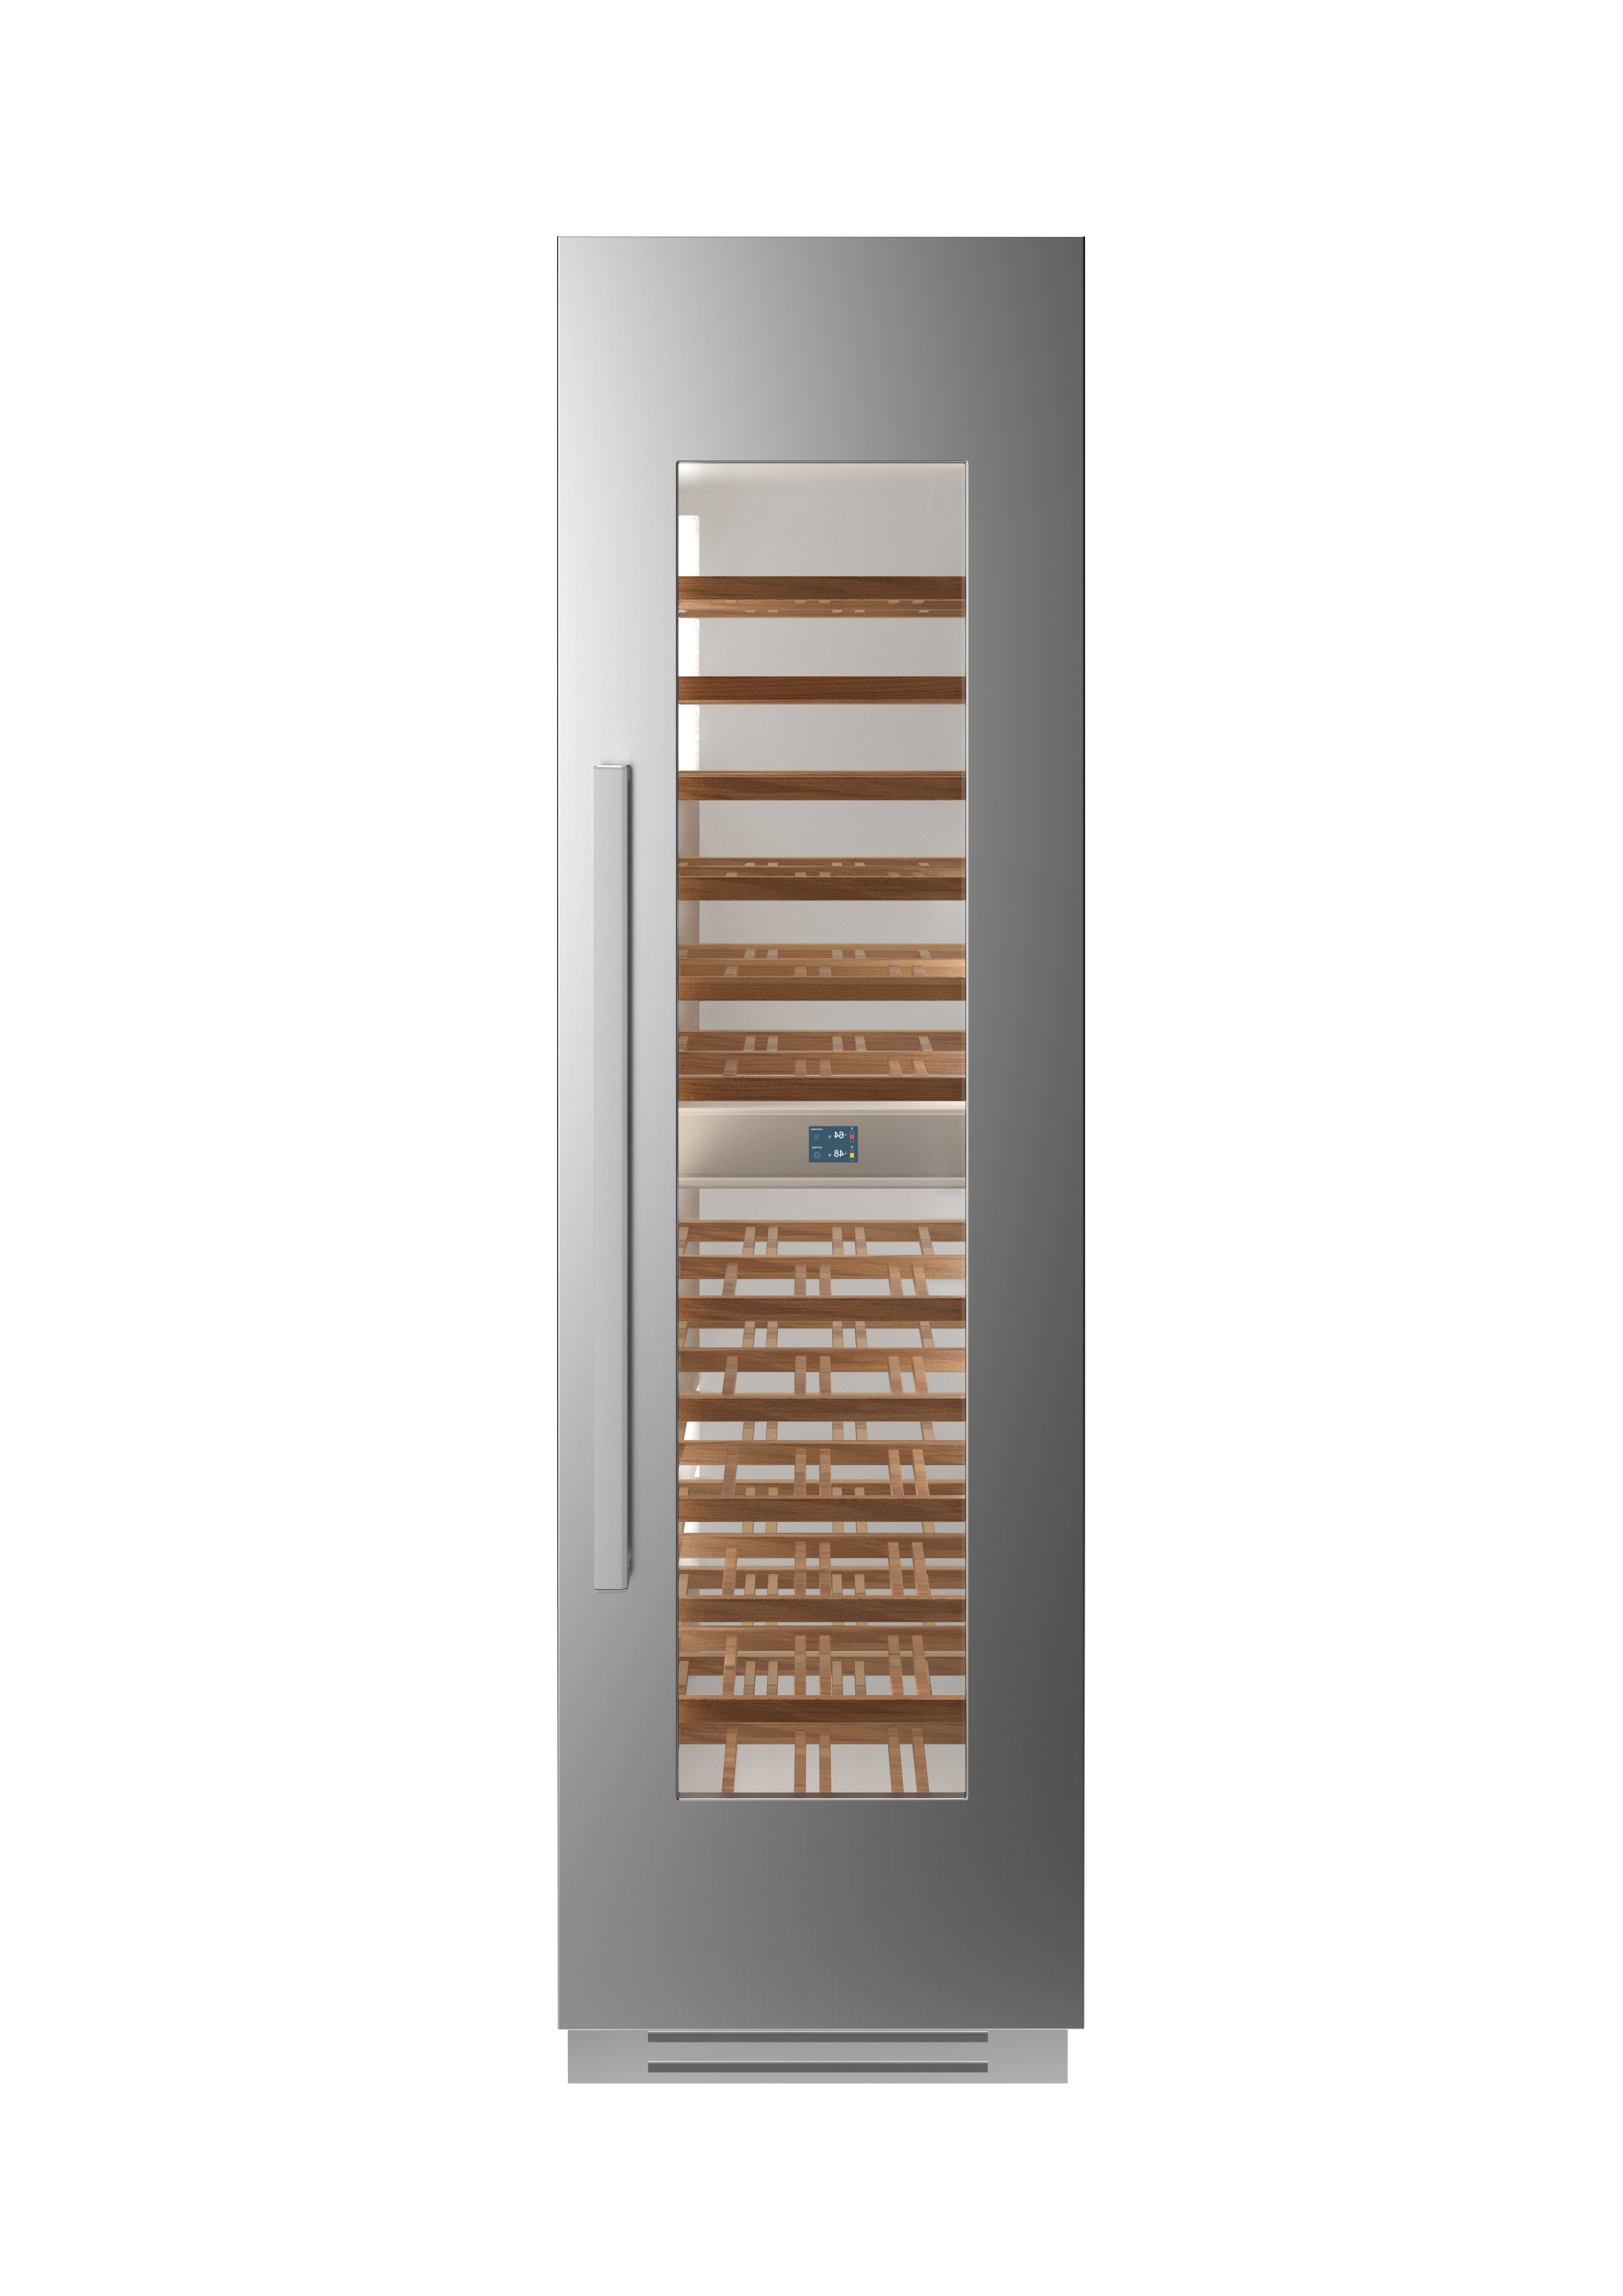 Bertazzoni Cellar REF24WCPIXR in Stainless Steel color showcased by Corbeil Electro Store